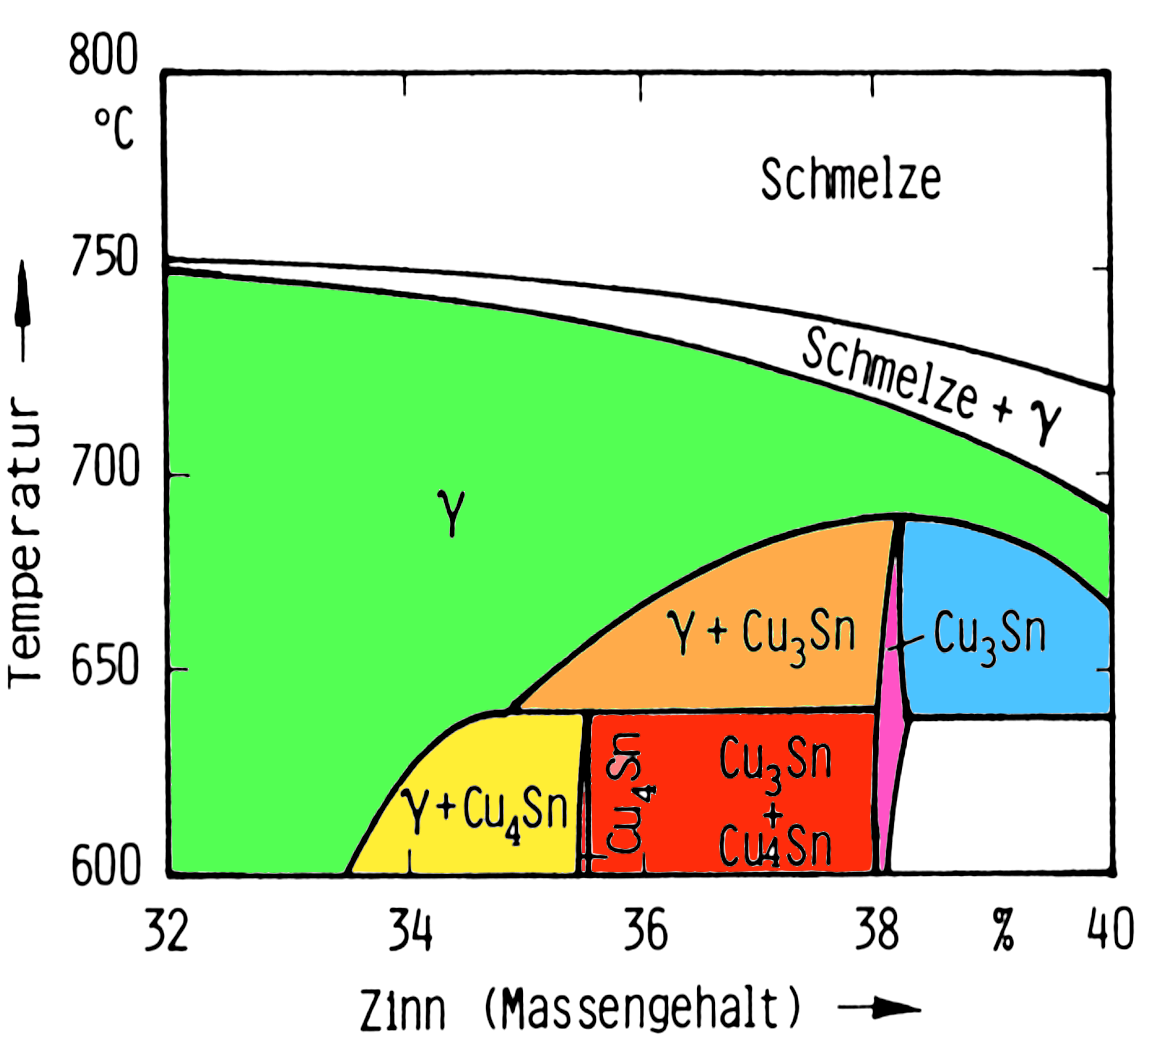 Figure 2: Excerpt from the Cu-Sn system with peritectoid transformation.